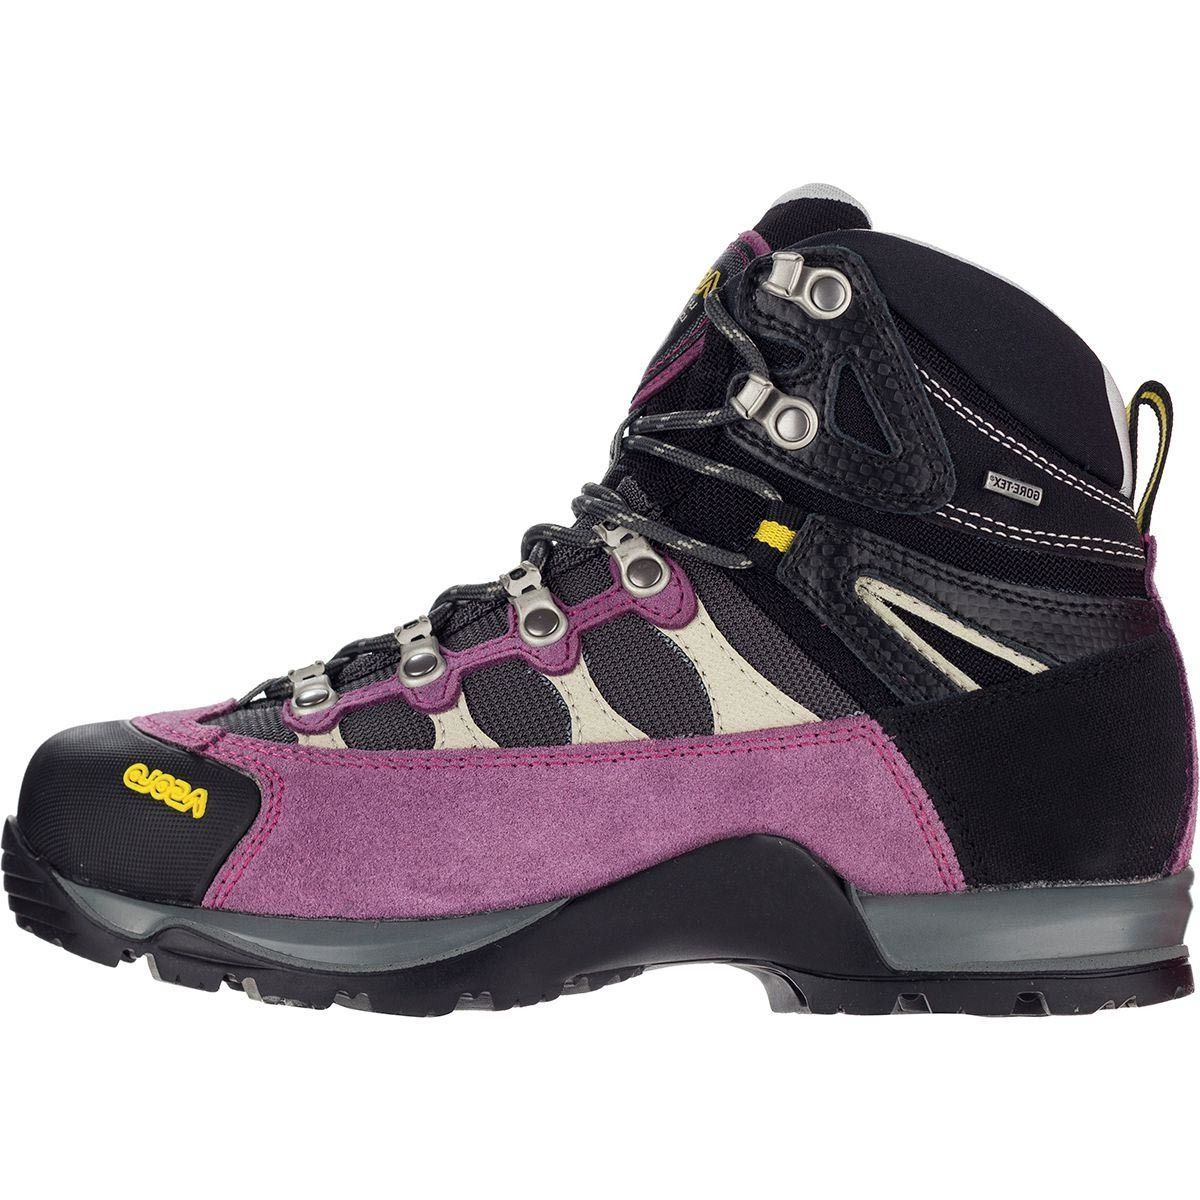 Asolo Stynger Gore-Tex Hiking Boot - Women's